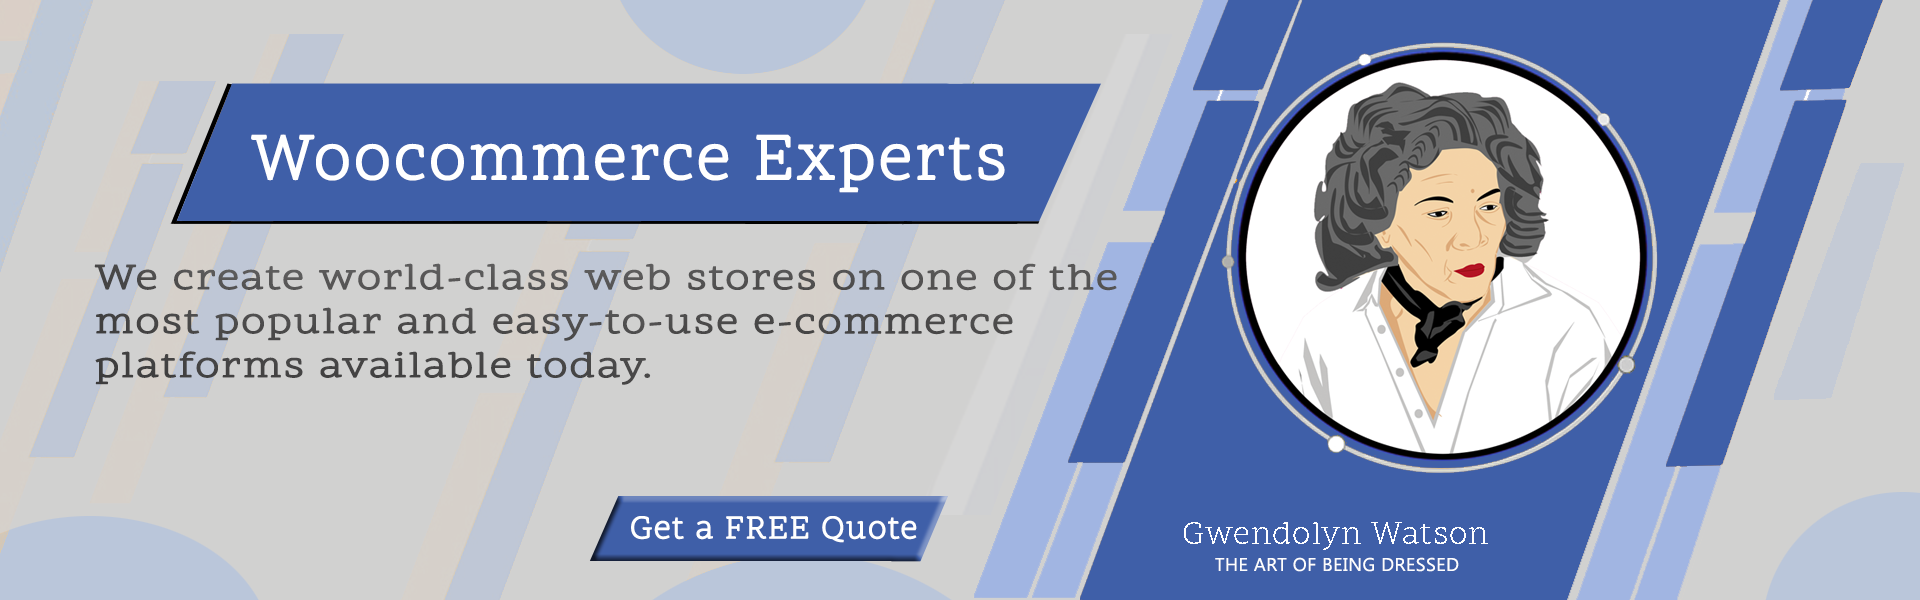 woocommerce-experts